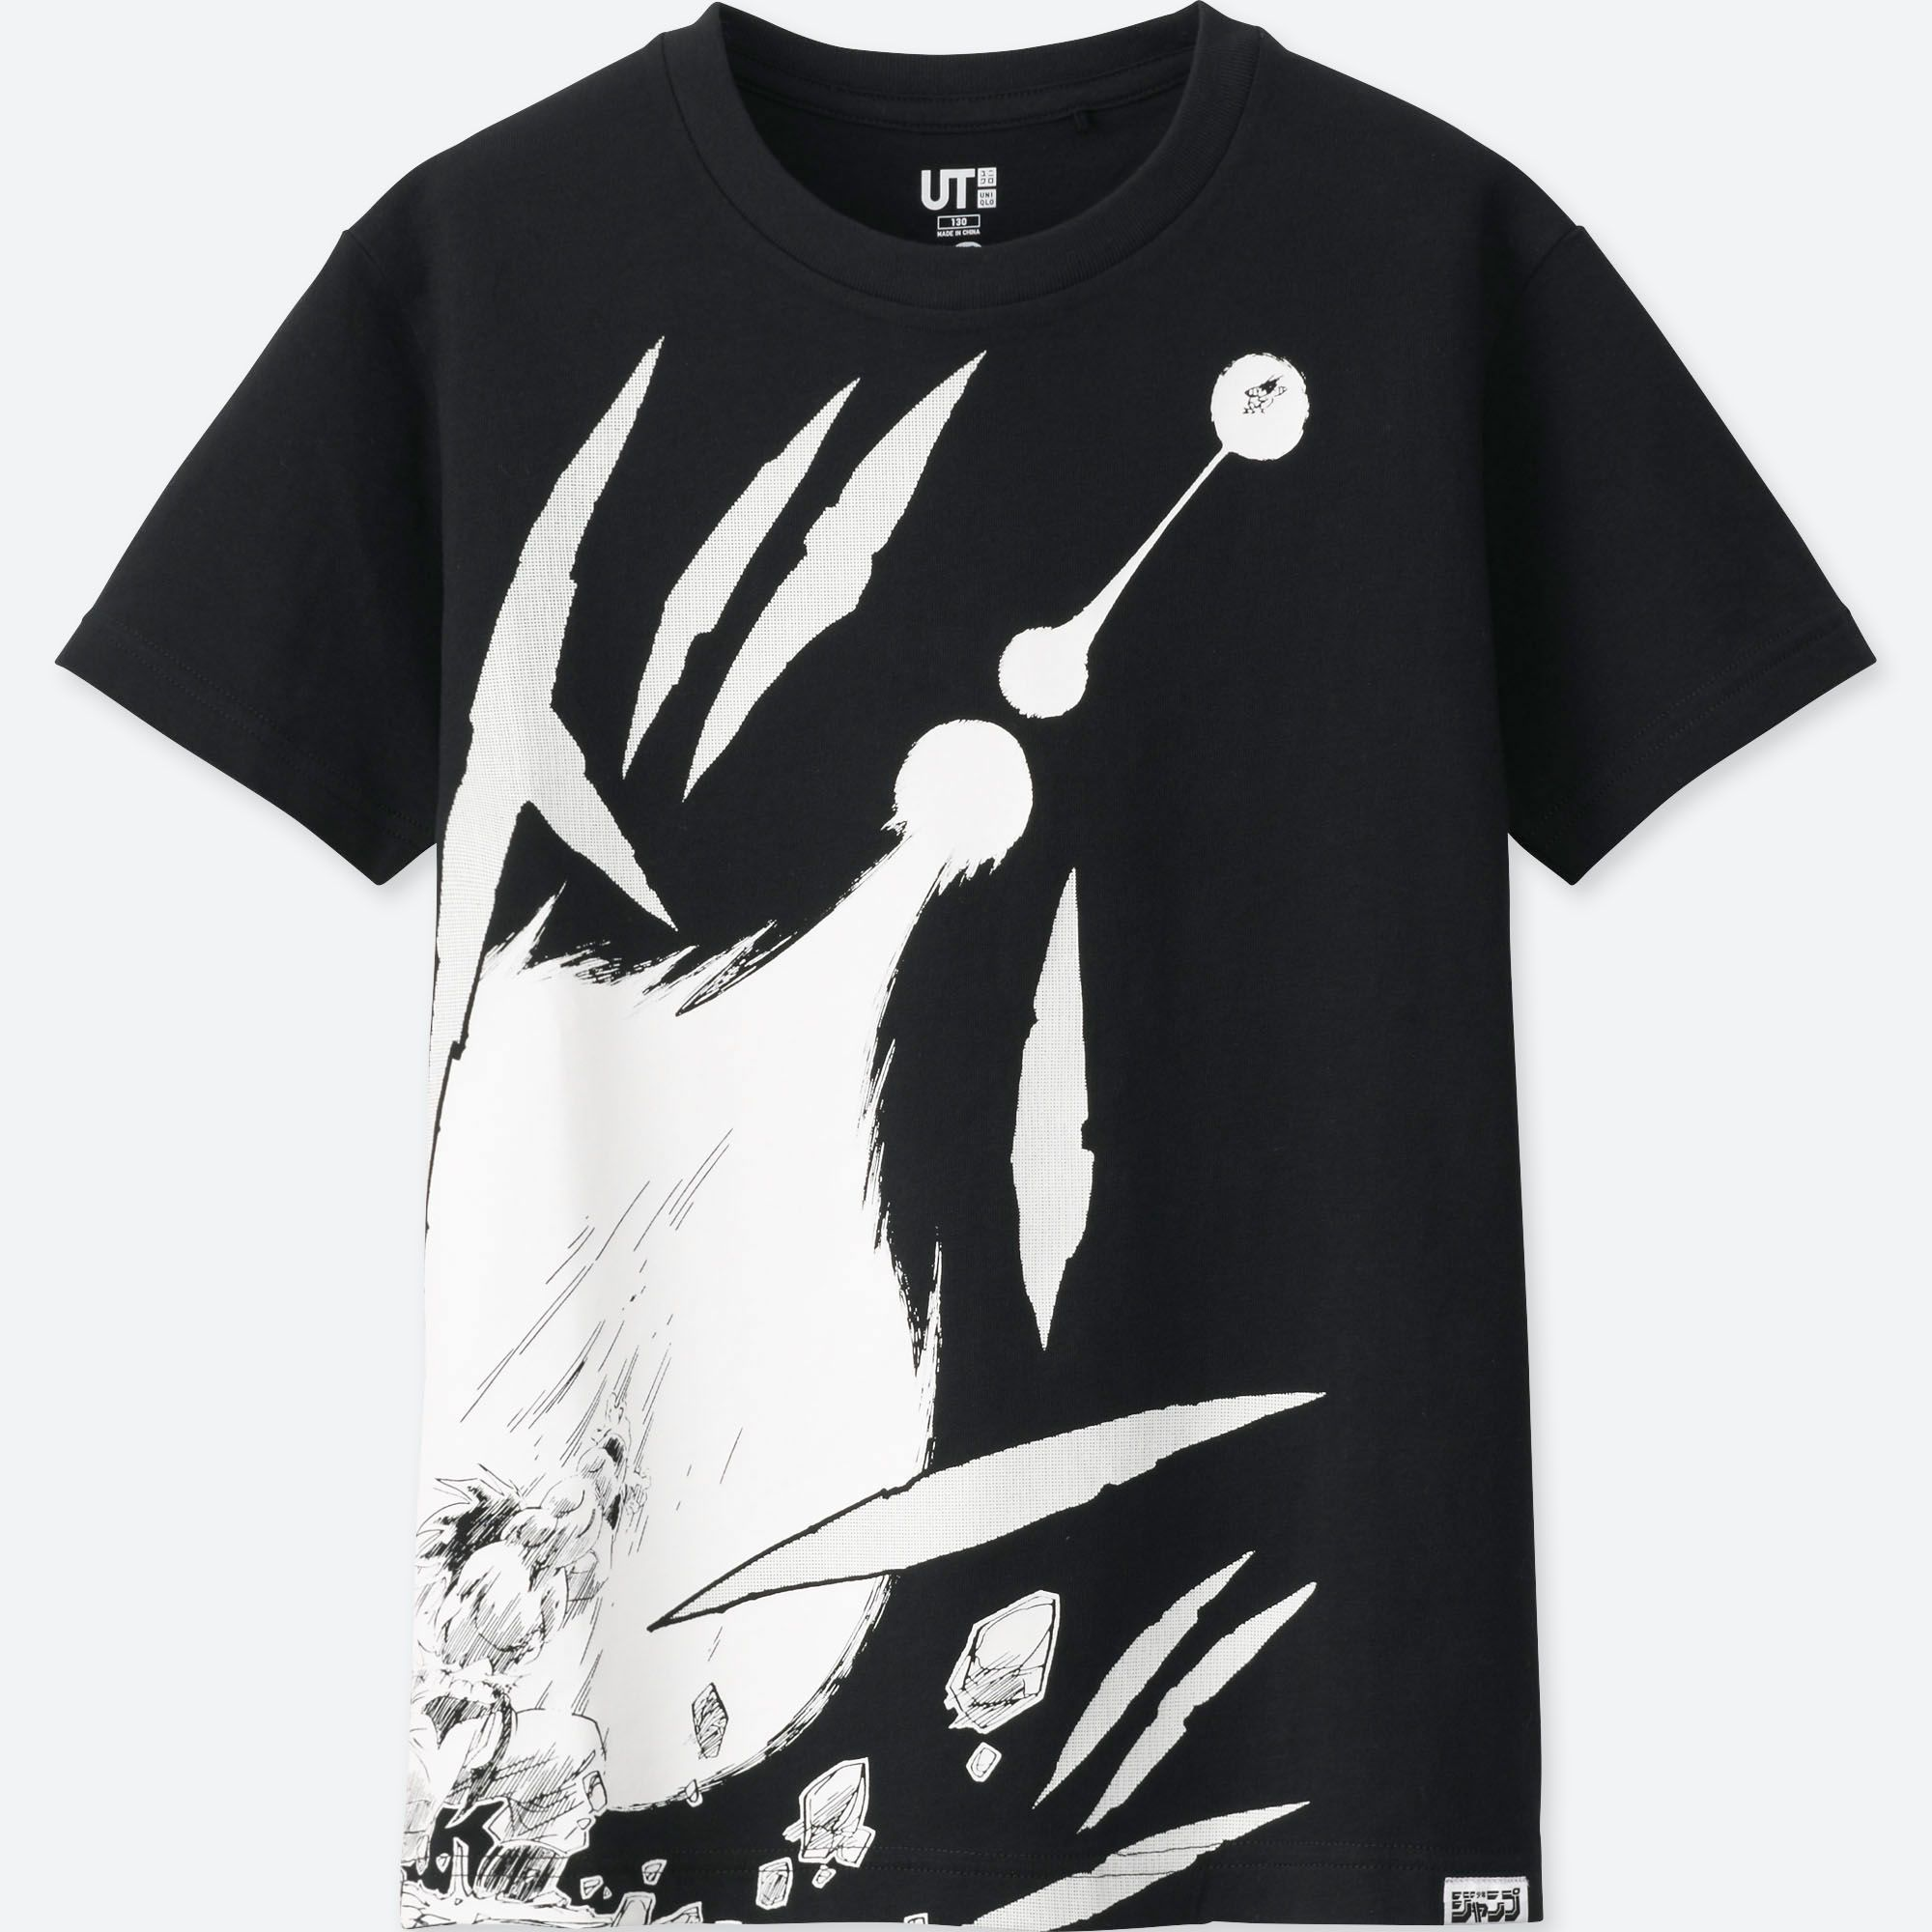 Celebrate Shonen Jump's 50th Anniversary with This Line from UNIQLO